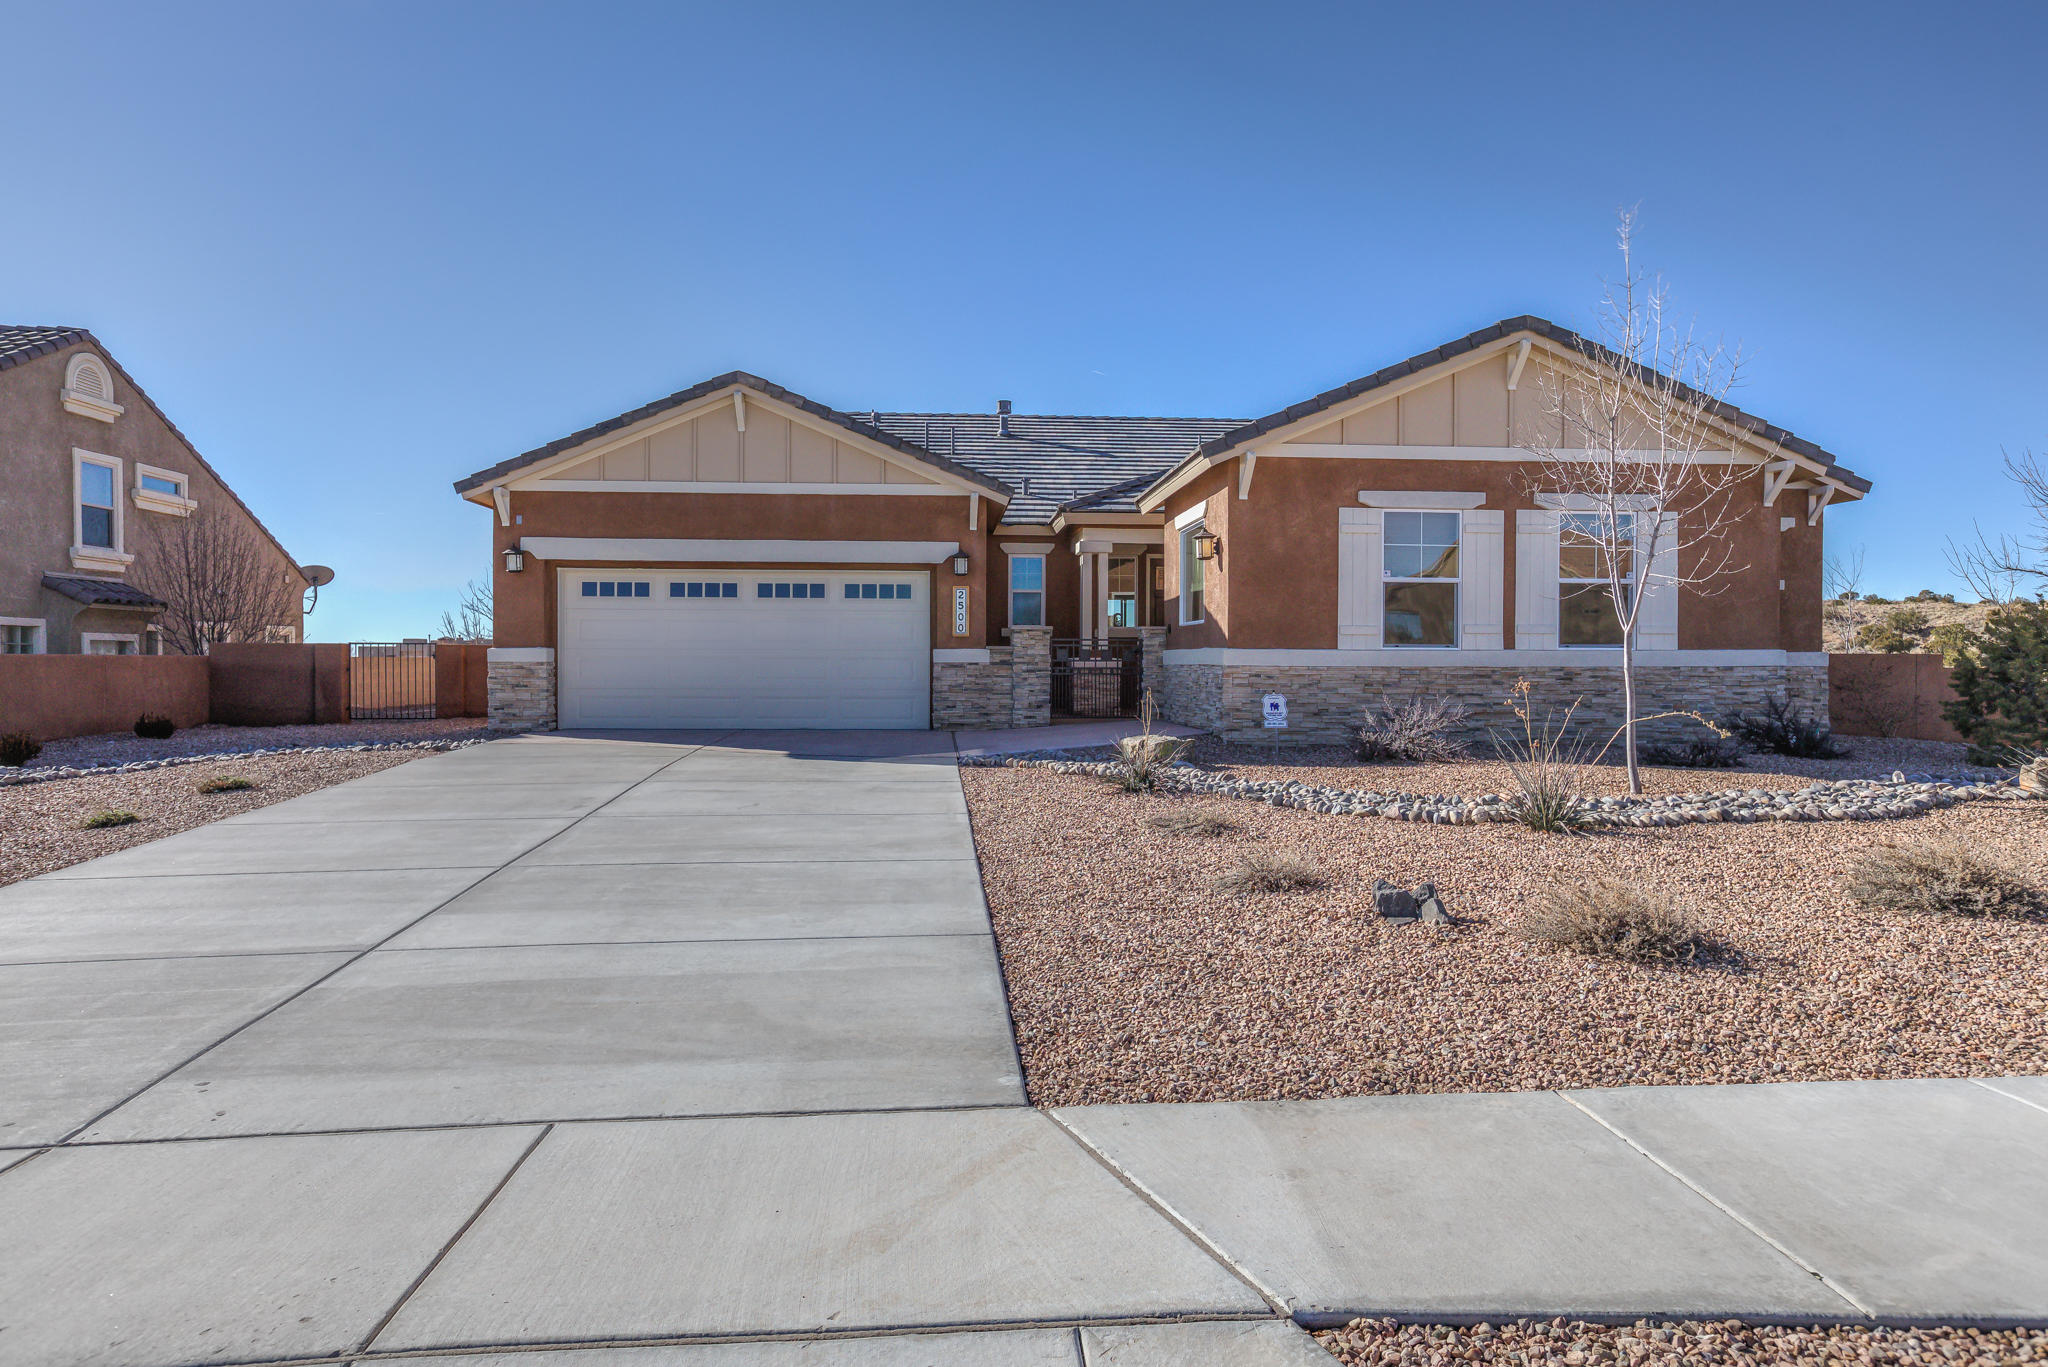 2500 NE Desert View Road, Rio Rancho, New Mexico